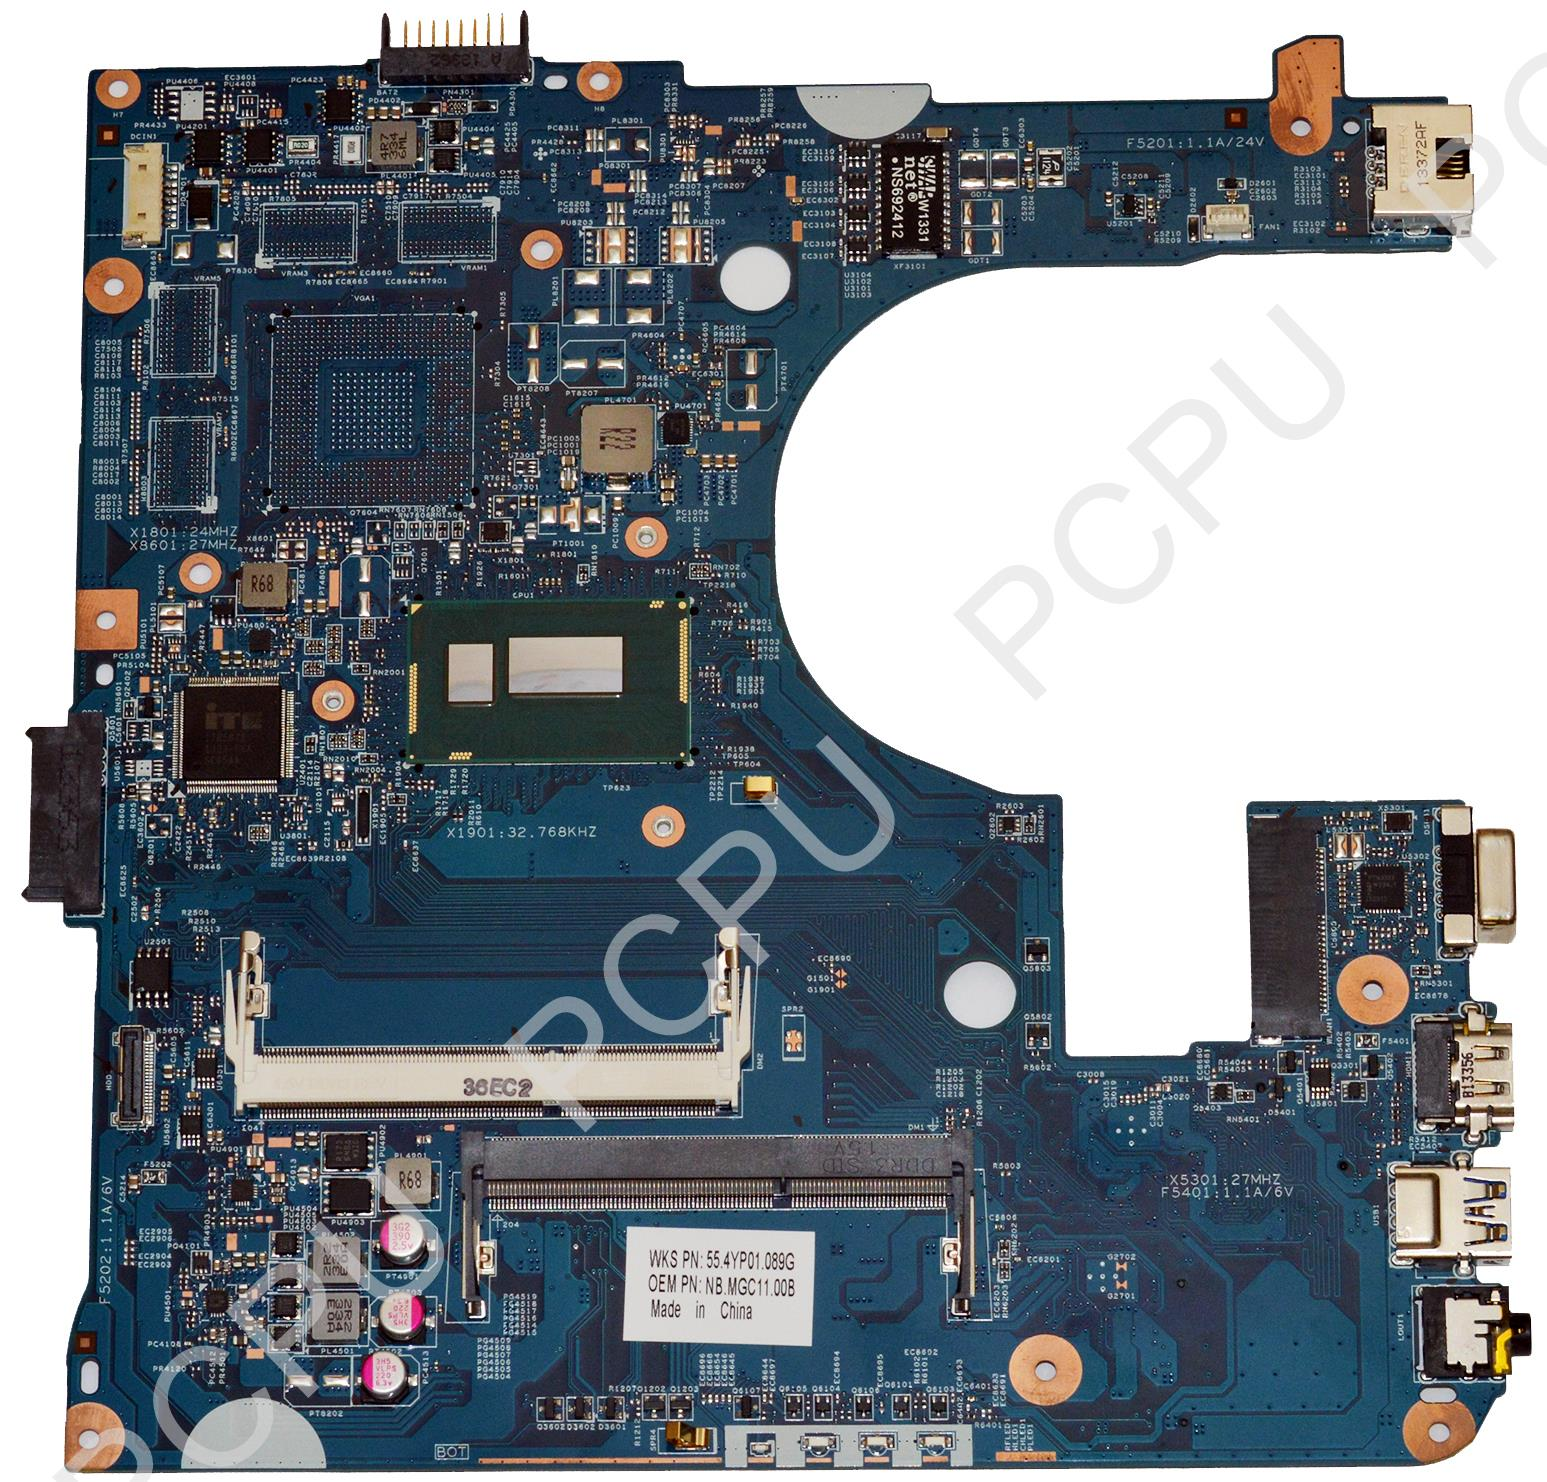 NB.MGC11.00B Acer Aspire E1-432 Laptop Motherboard w/ Intel Pentium DC 3556U 1.7GHz CPU